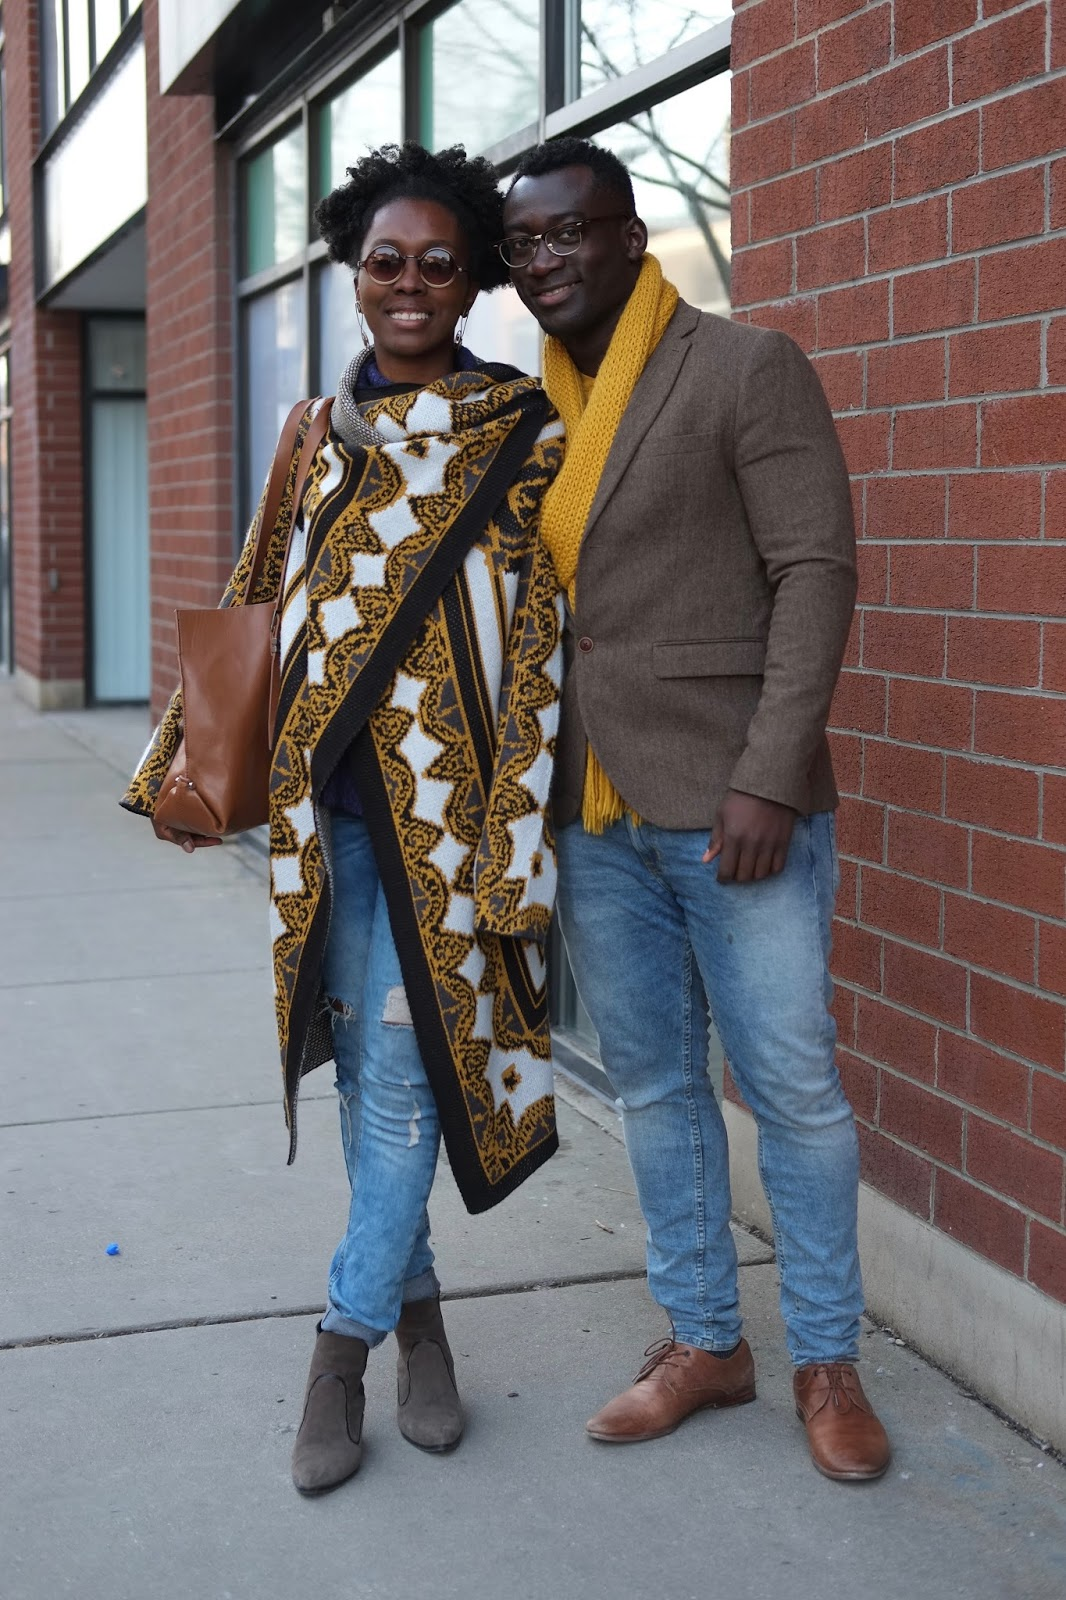 Lesan And John Chicago Looks A Chicago Street Style Fashion Blog